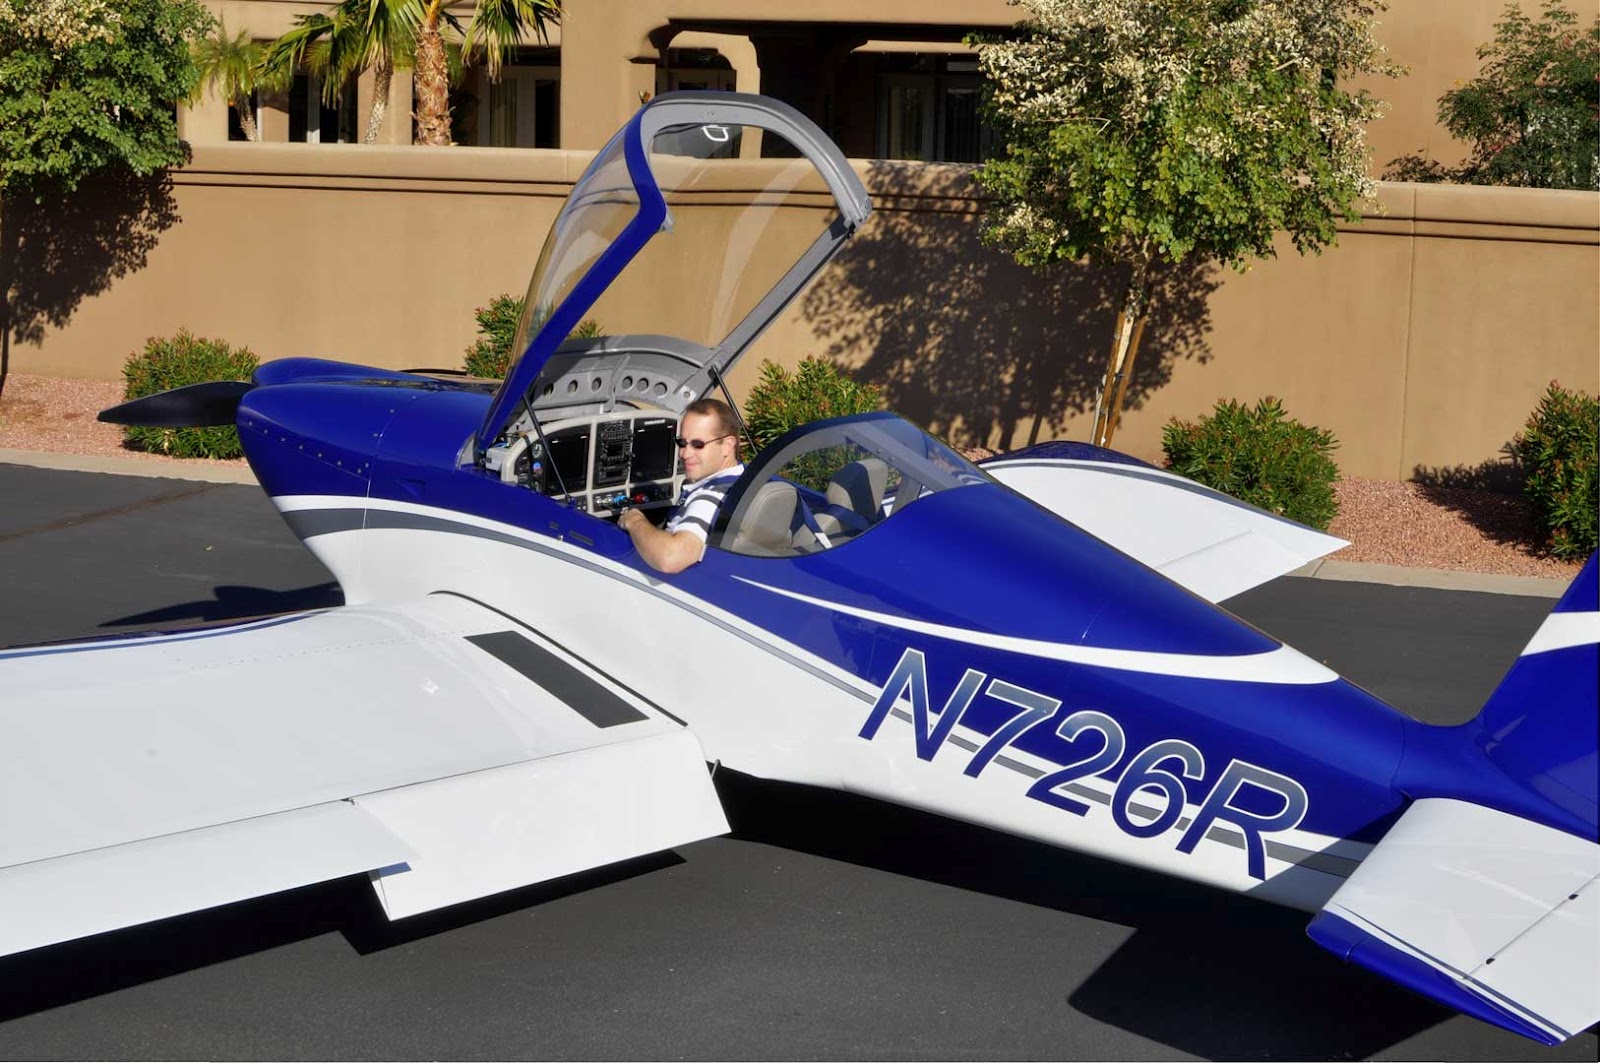 This is Chris Sandsu0027 plane and the canopy scheme I am referring to...notice the black strip over the roll bar and the u0027targa stripu0027 on the canopy. & Ronu0027s RV7 Factory: Cracked Canopy!! HOBBS 1188.0 hrs